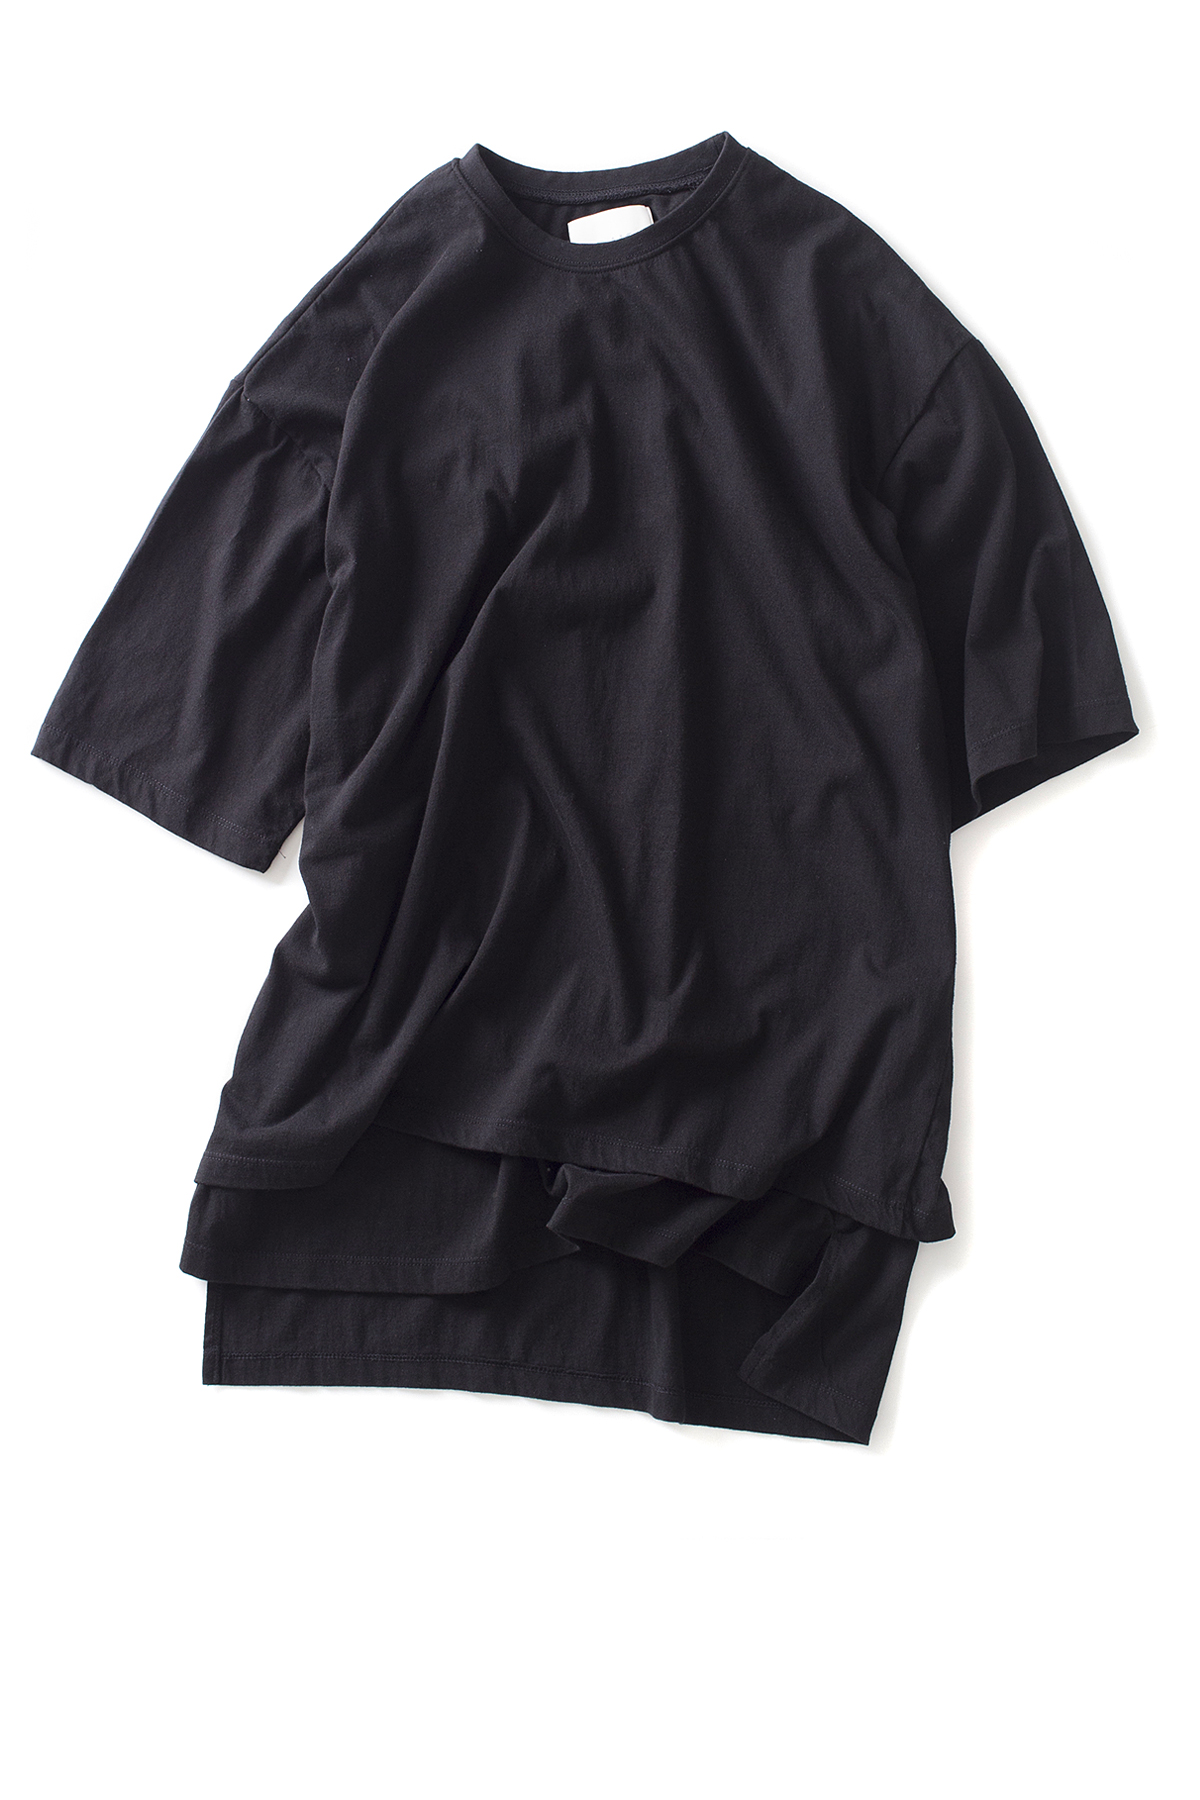 GAKURO : Layered Ovesized S/S T-Shirt (Black)